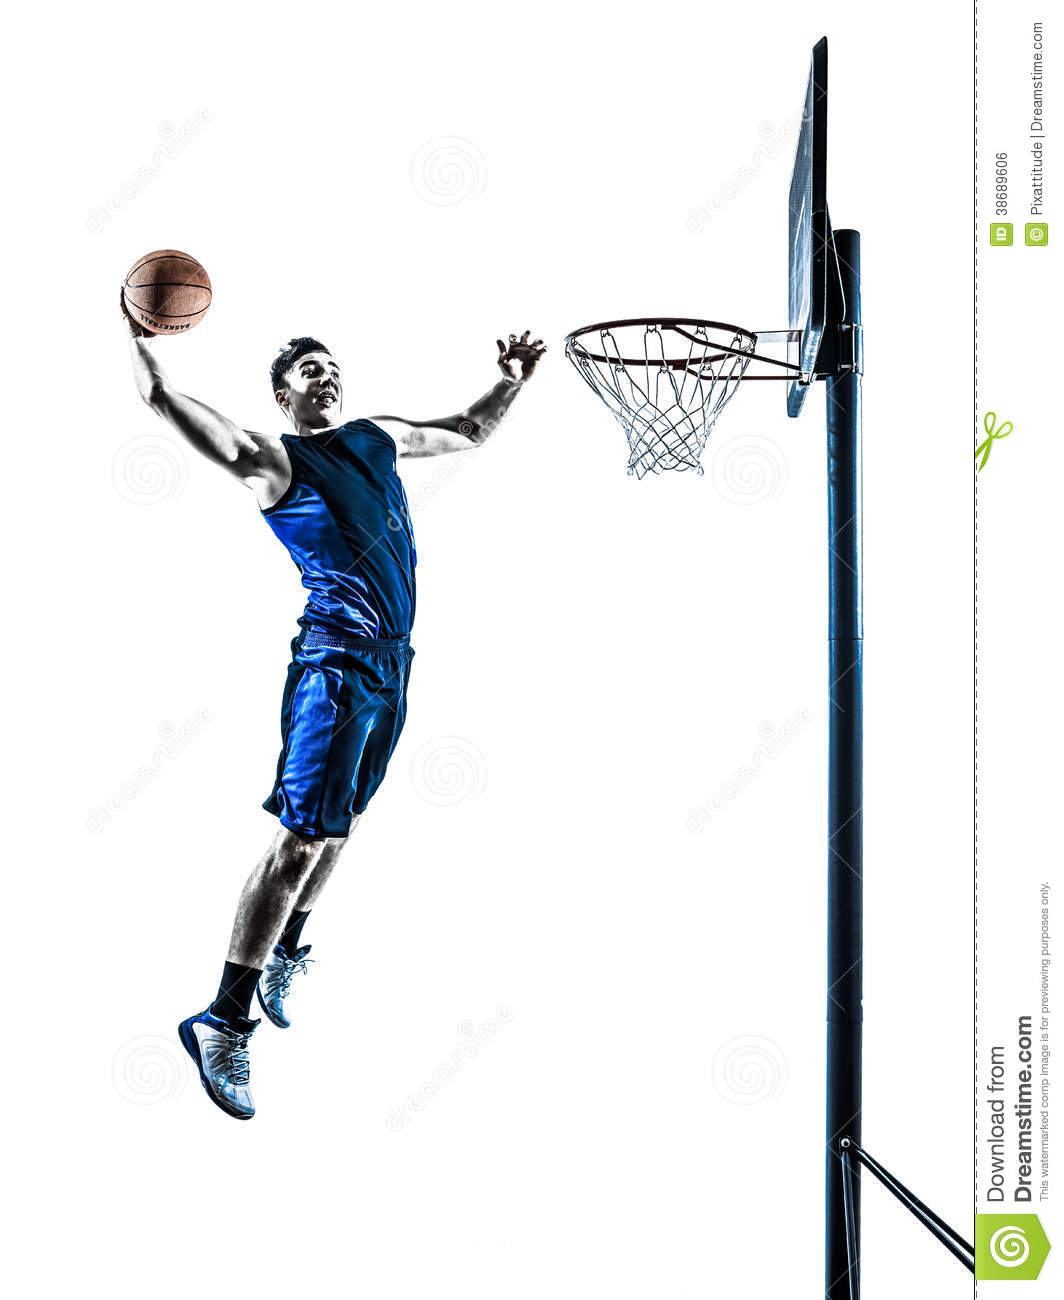 Basketball Player Jumping Dunking Silhouette Royalty Free Stock Image ...